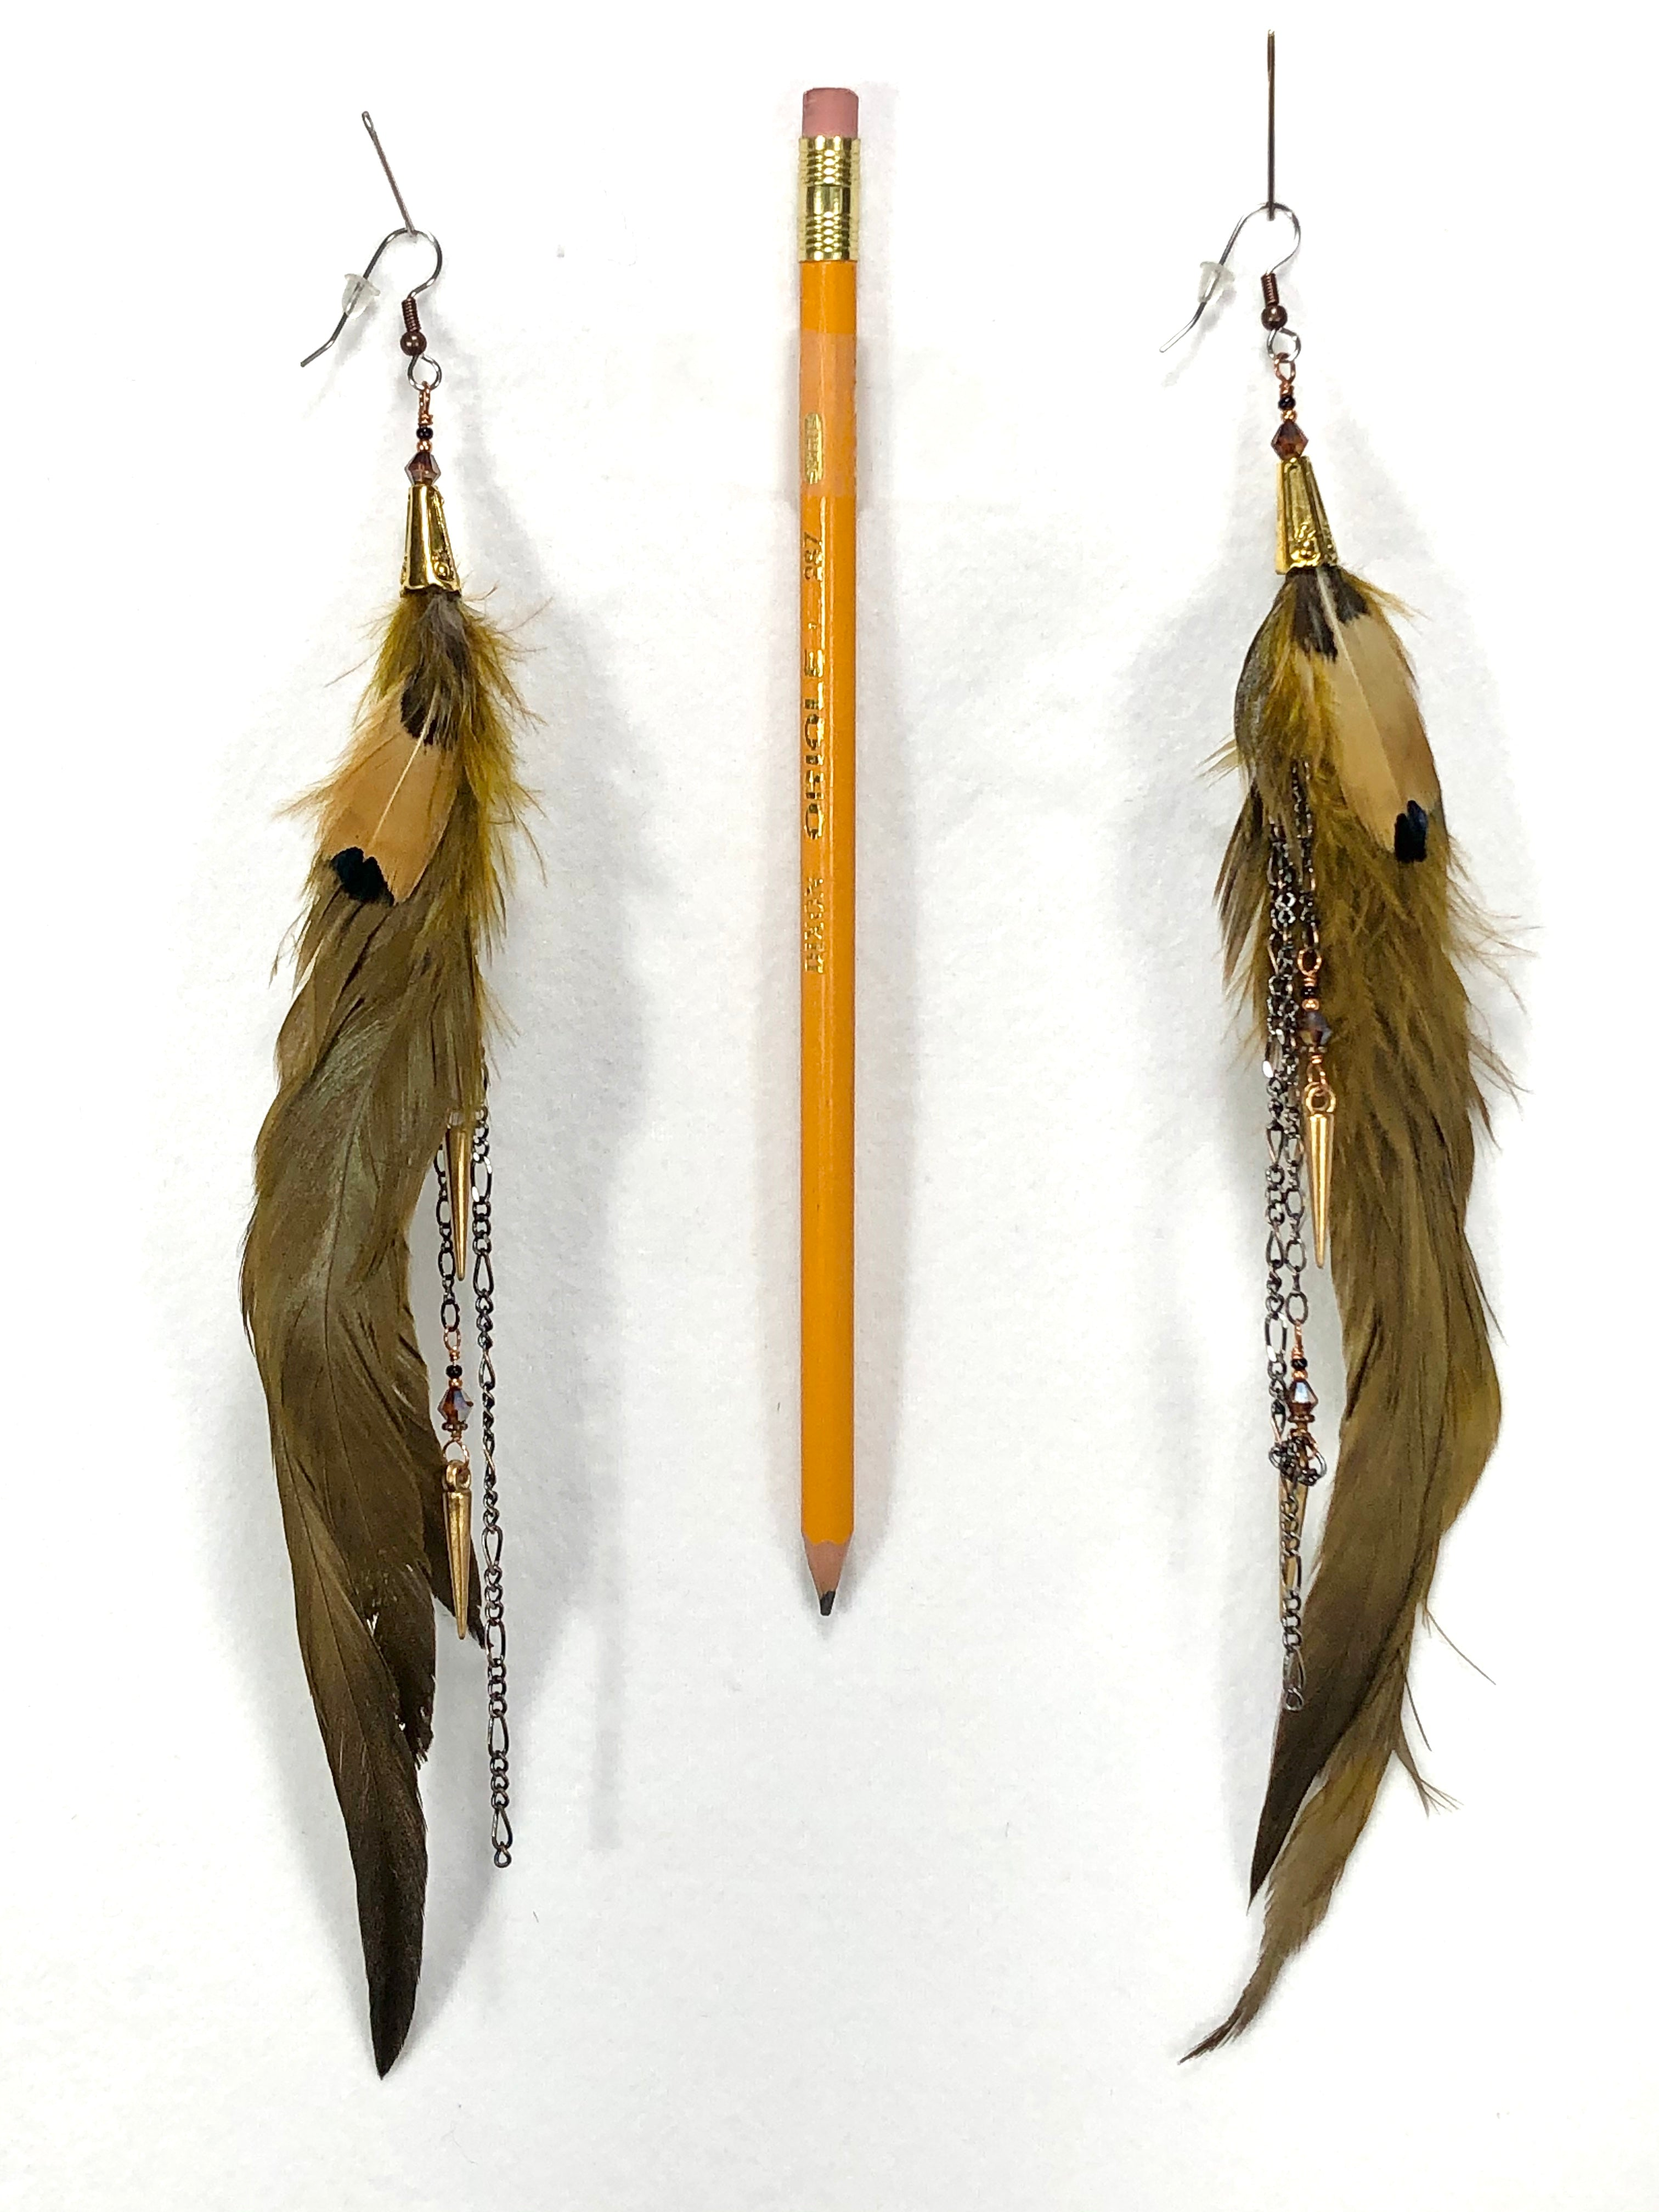 ER08 Pair of feather earrings in Army green and pheasant feathers with gold accents.